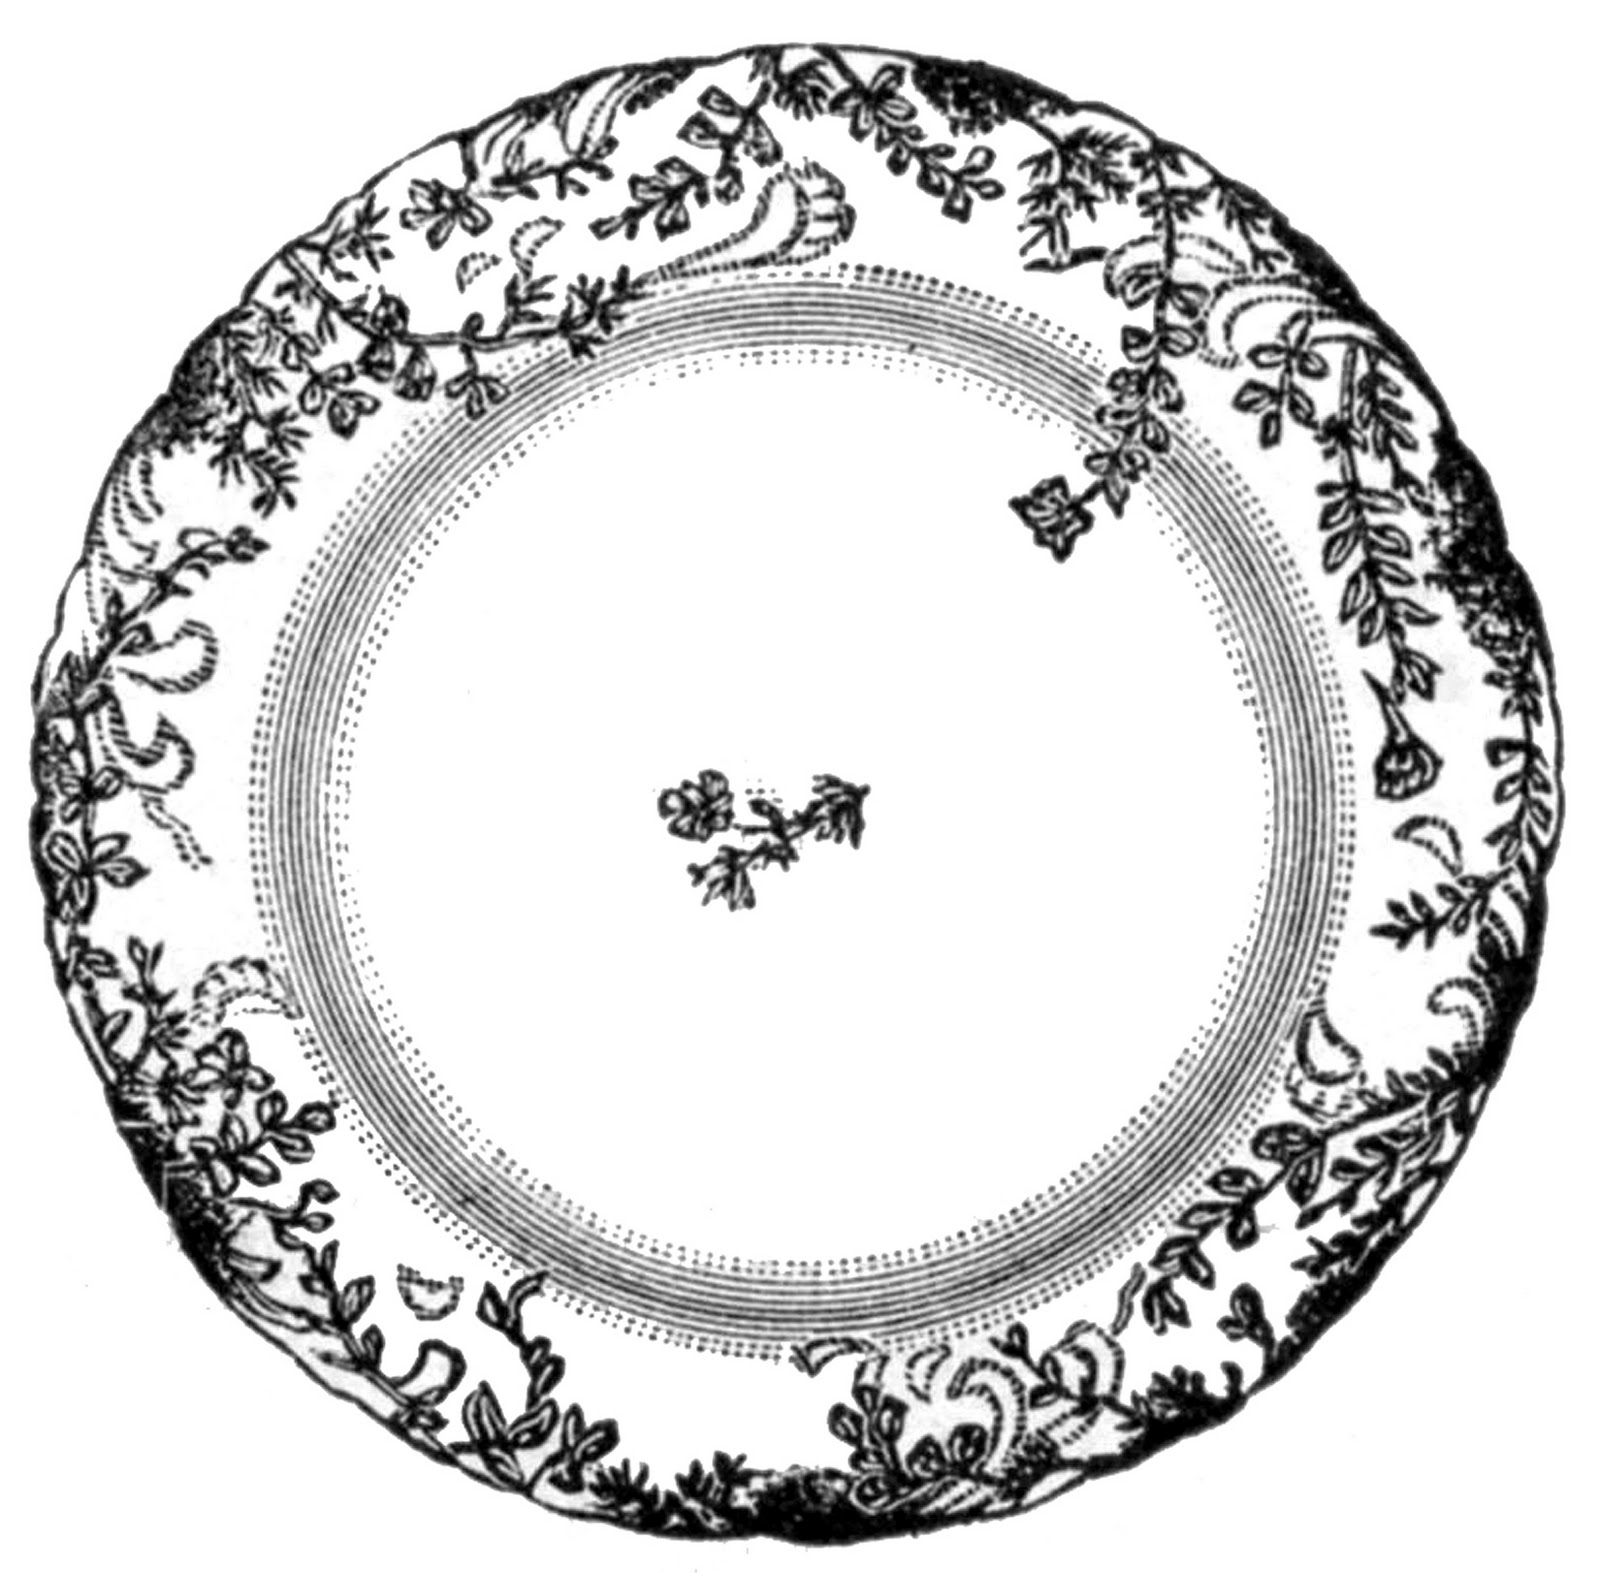 Vintage Dinner Plate Clip Art  sc 1 st  Cliparts & Vintage Dinner Plate Clip Art u2013 Cliparts